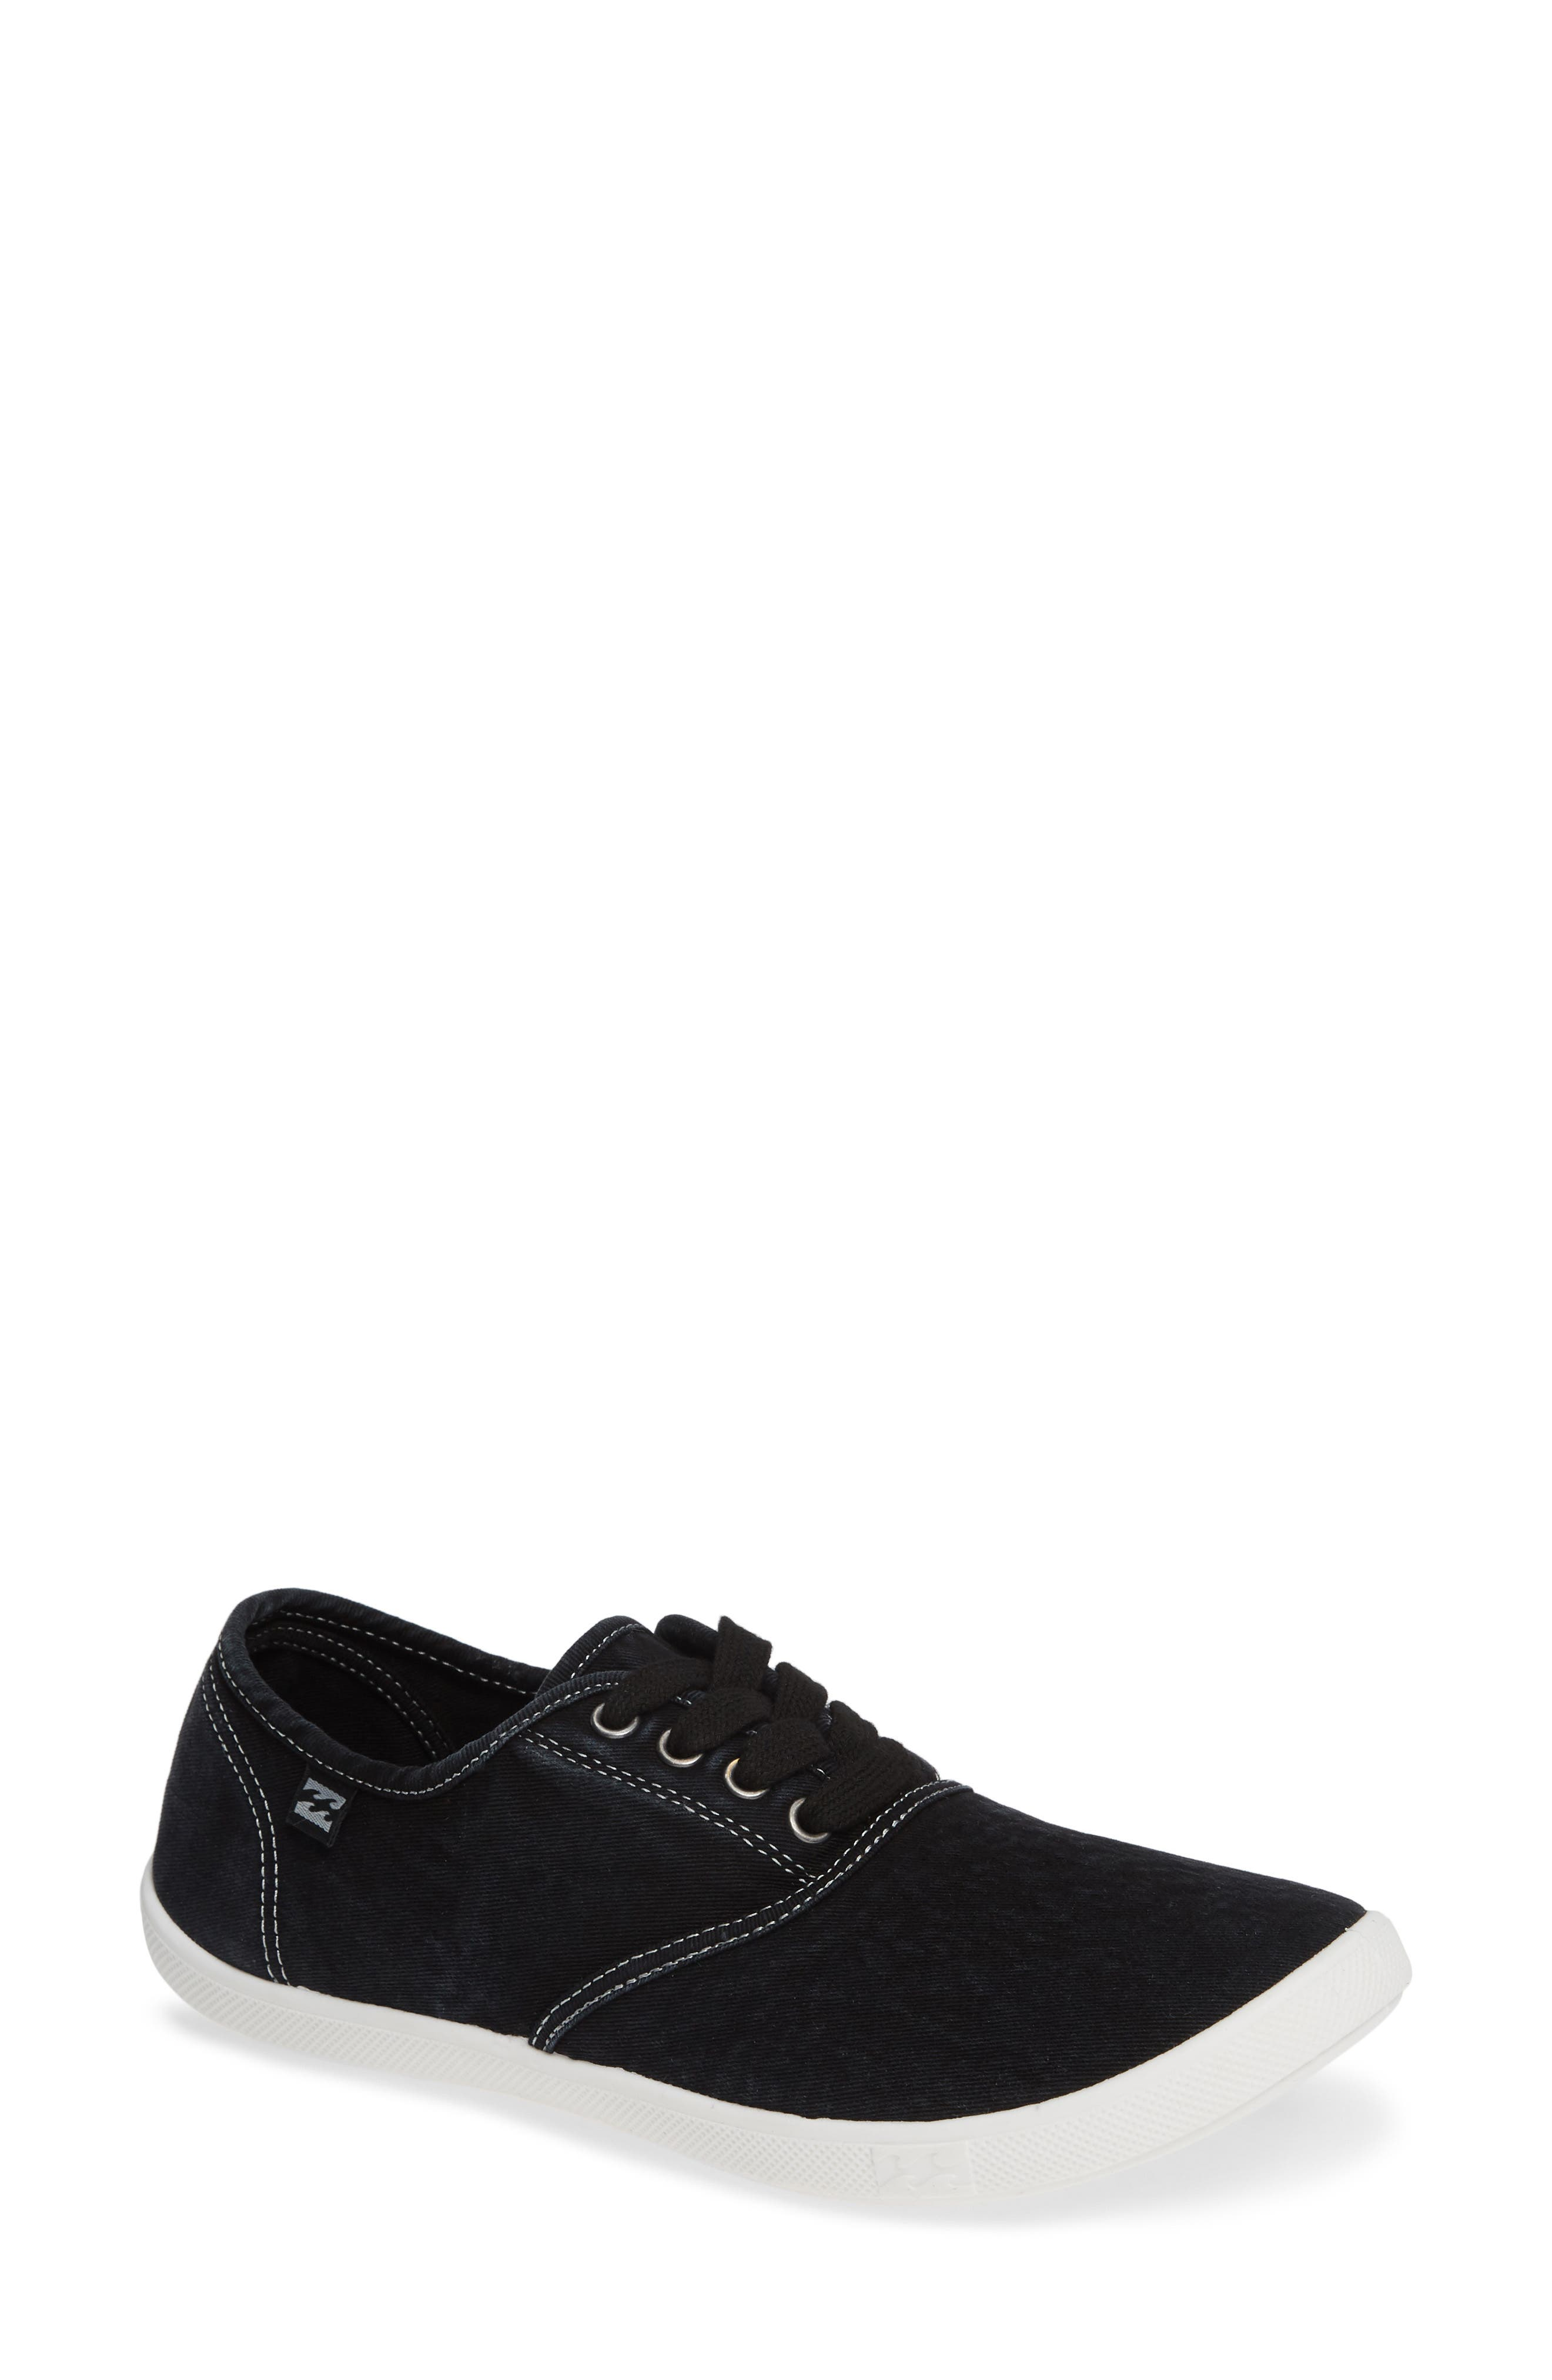 Addy Sneaker,                             Main thumbnail 1, color,                             Off Black